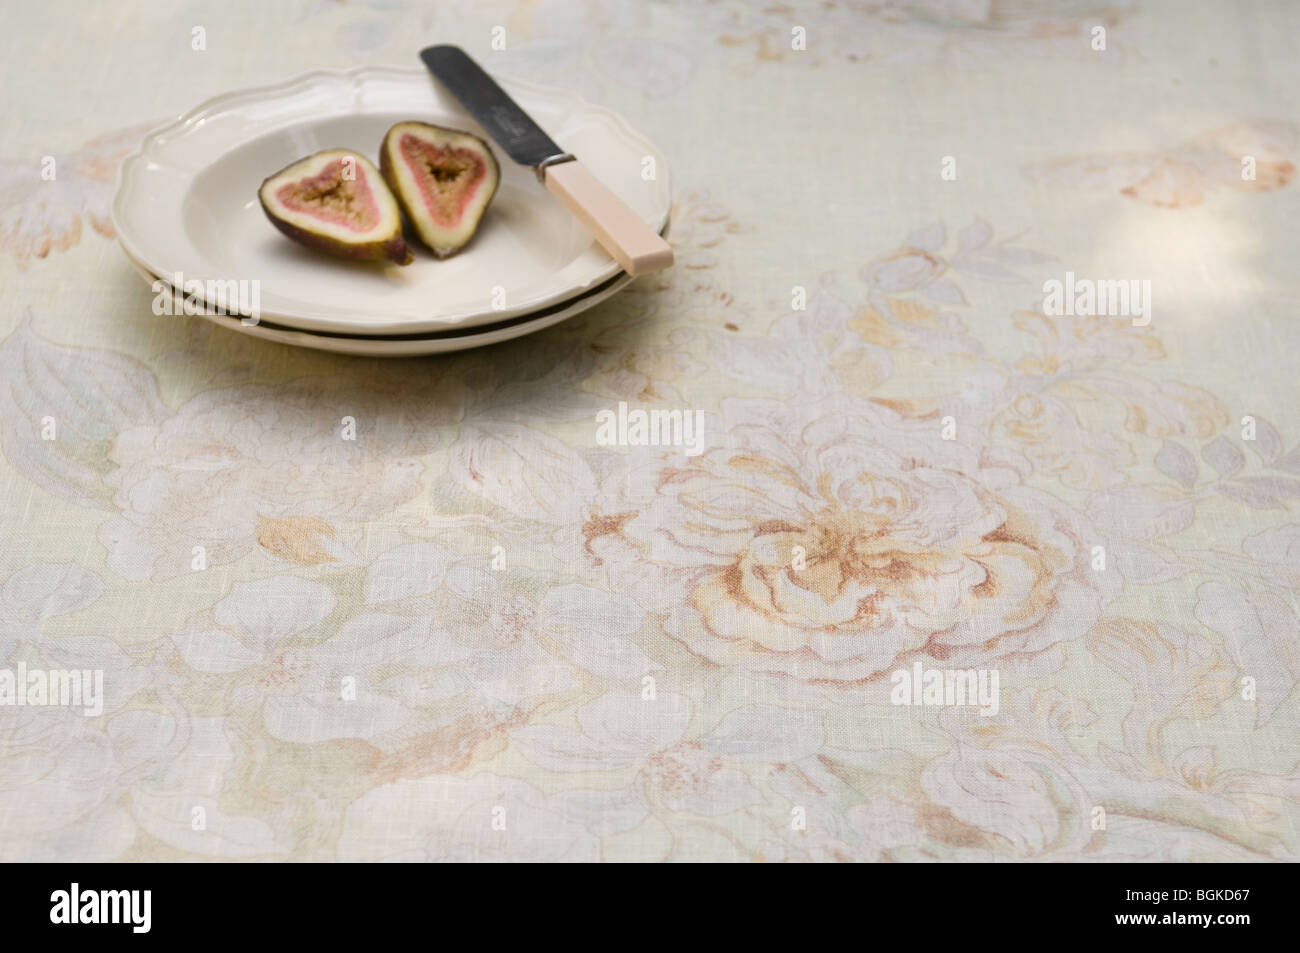 Sliced fig on plate with bone handled knife and Jim Thompson design fabric - Stock Image